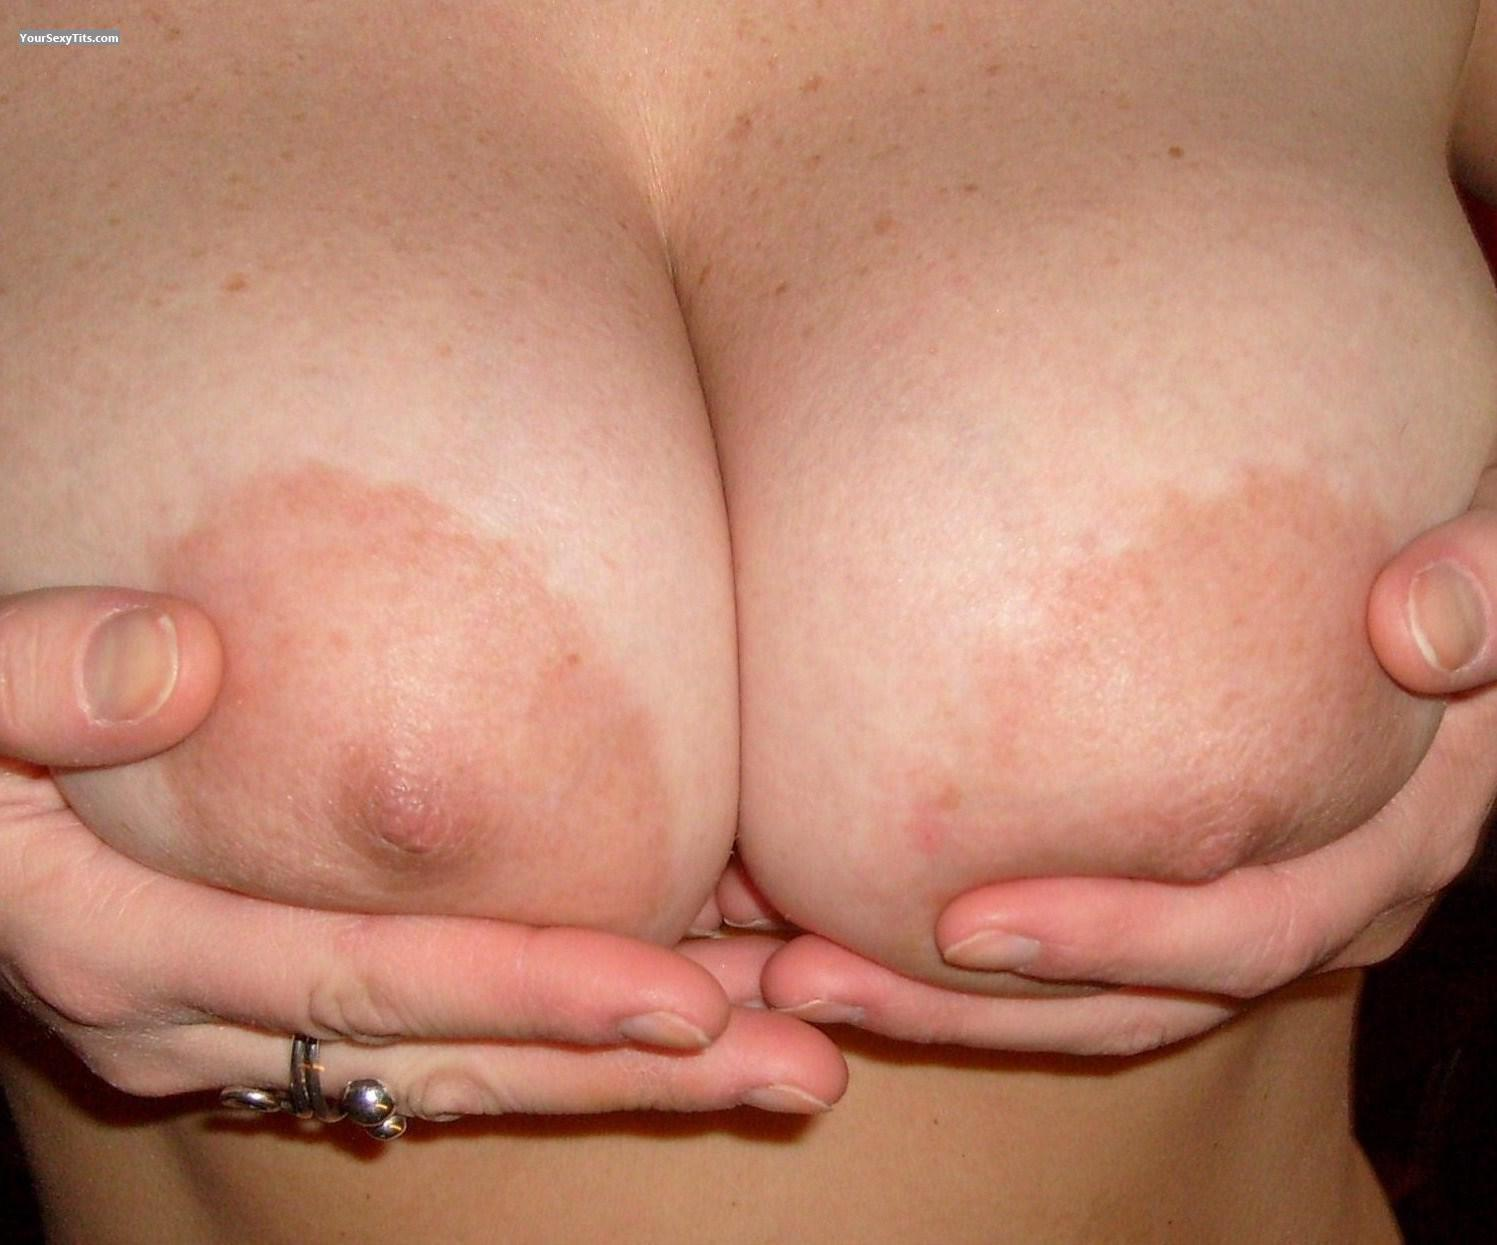 Tit Flash: Medium Tits - Topless Peteralf from Germany